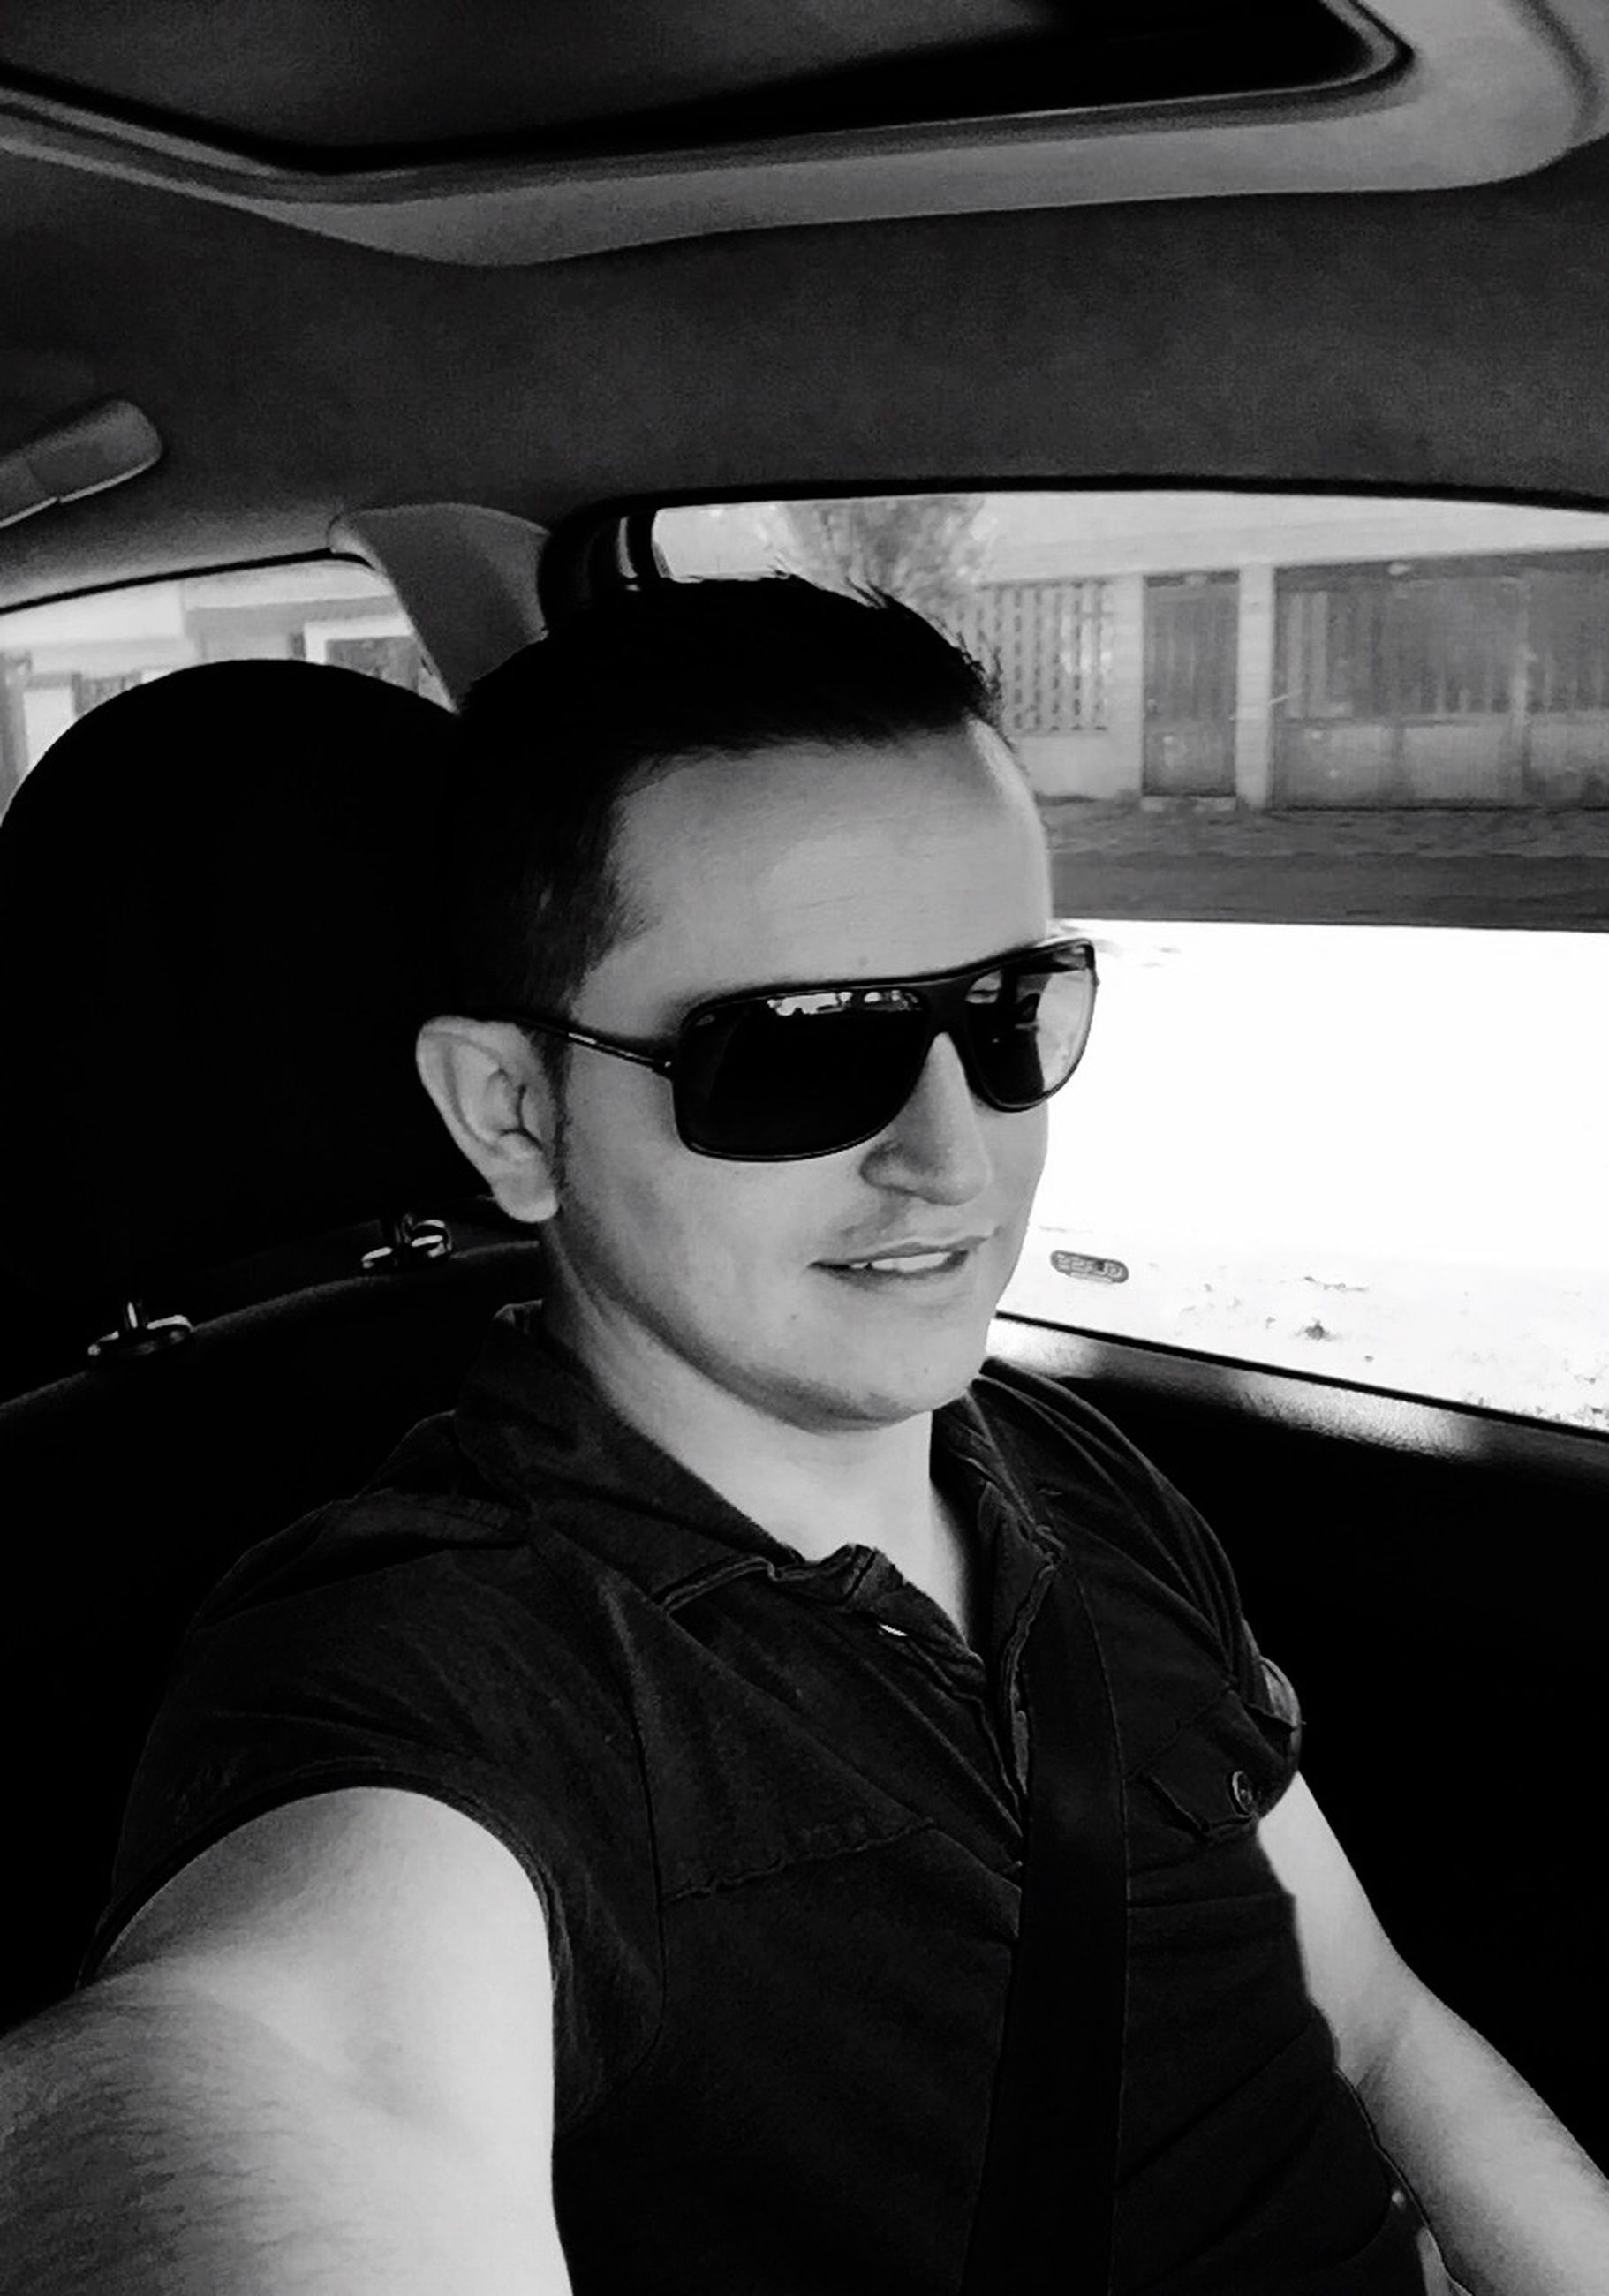 lifestyles, young adult, transportation, sunglasses, portrait, looking at camera, mode of transport, leisure activity, young men, person, car, headshot, vehicle interior, travel, close-up, front view, car interior, head and shoulders